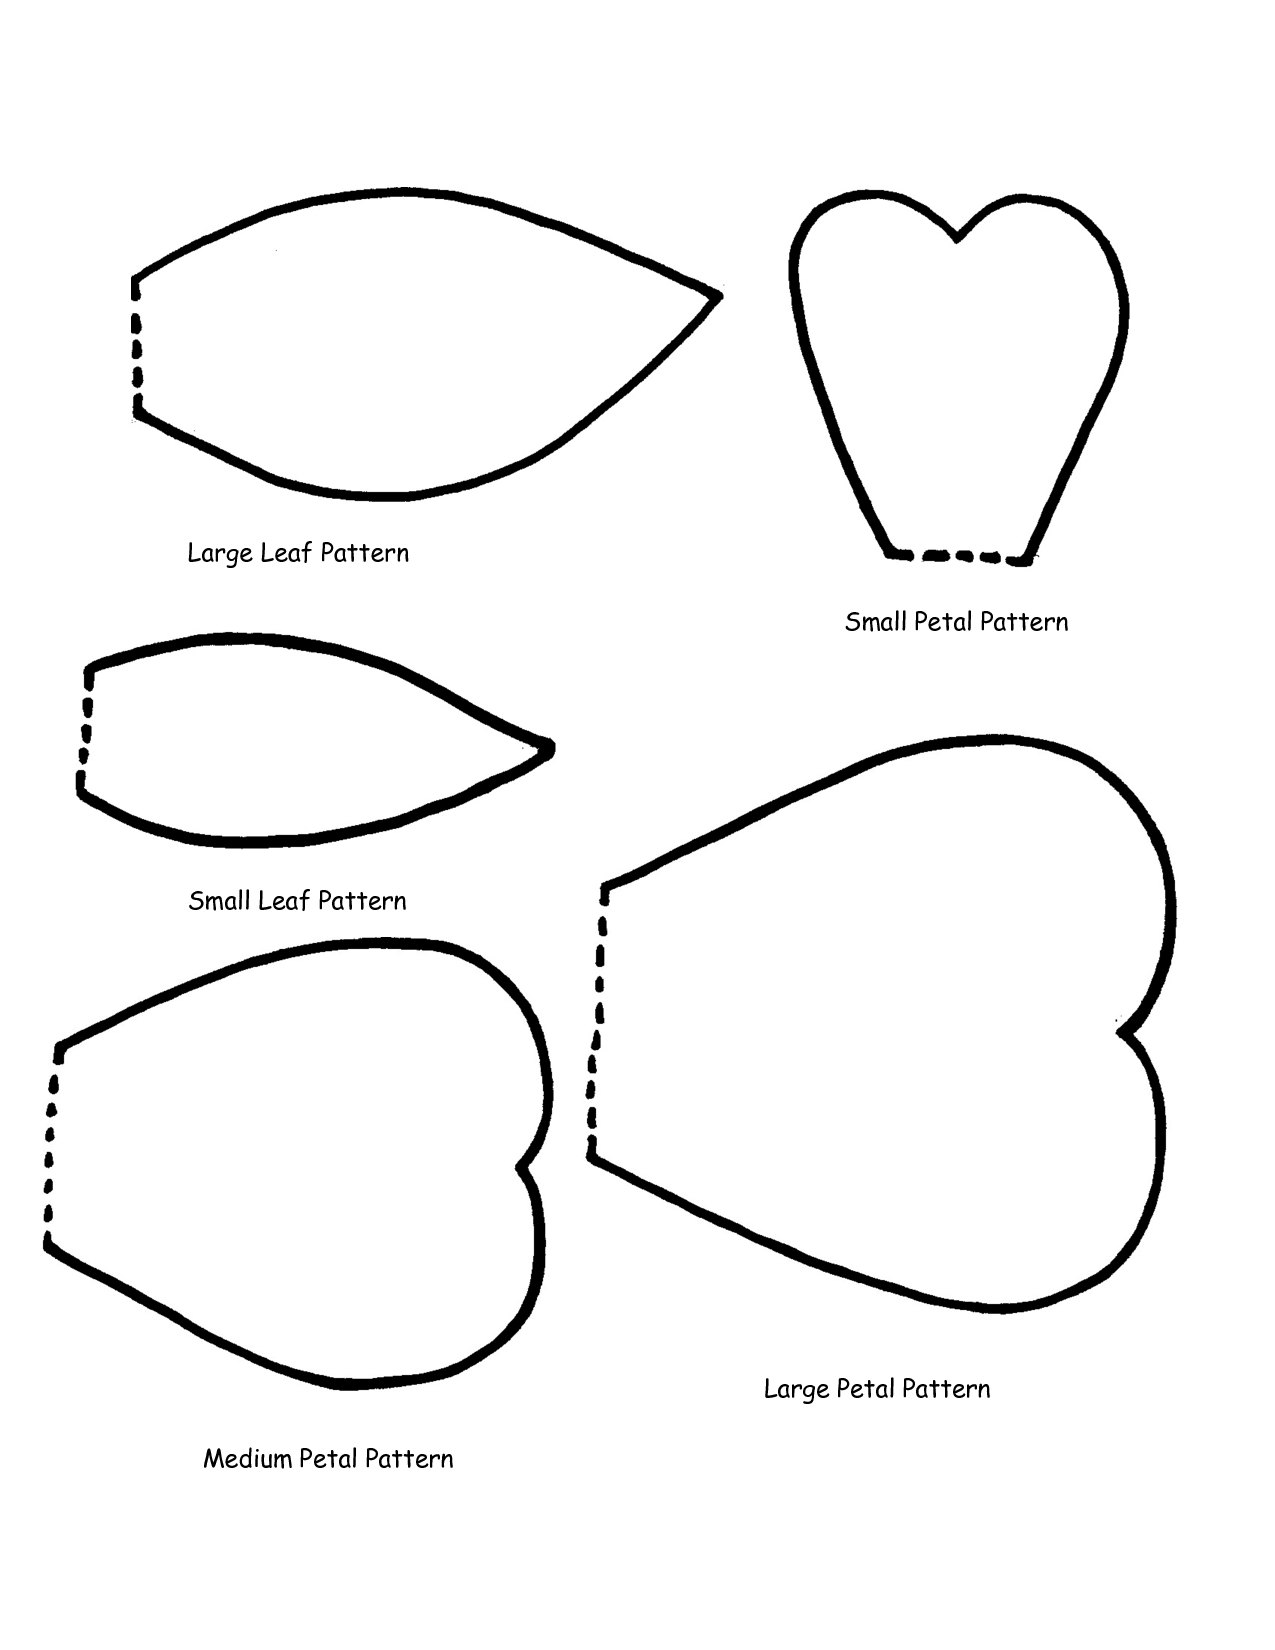 Free Flower Petals Template, Download Free Clip Art, Free Clip Art - 5 Petal Flower Template Free Printable